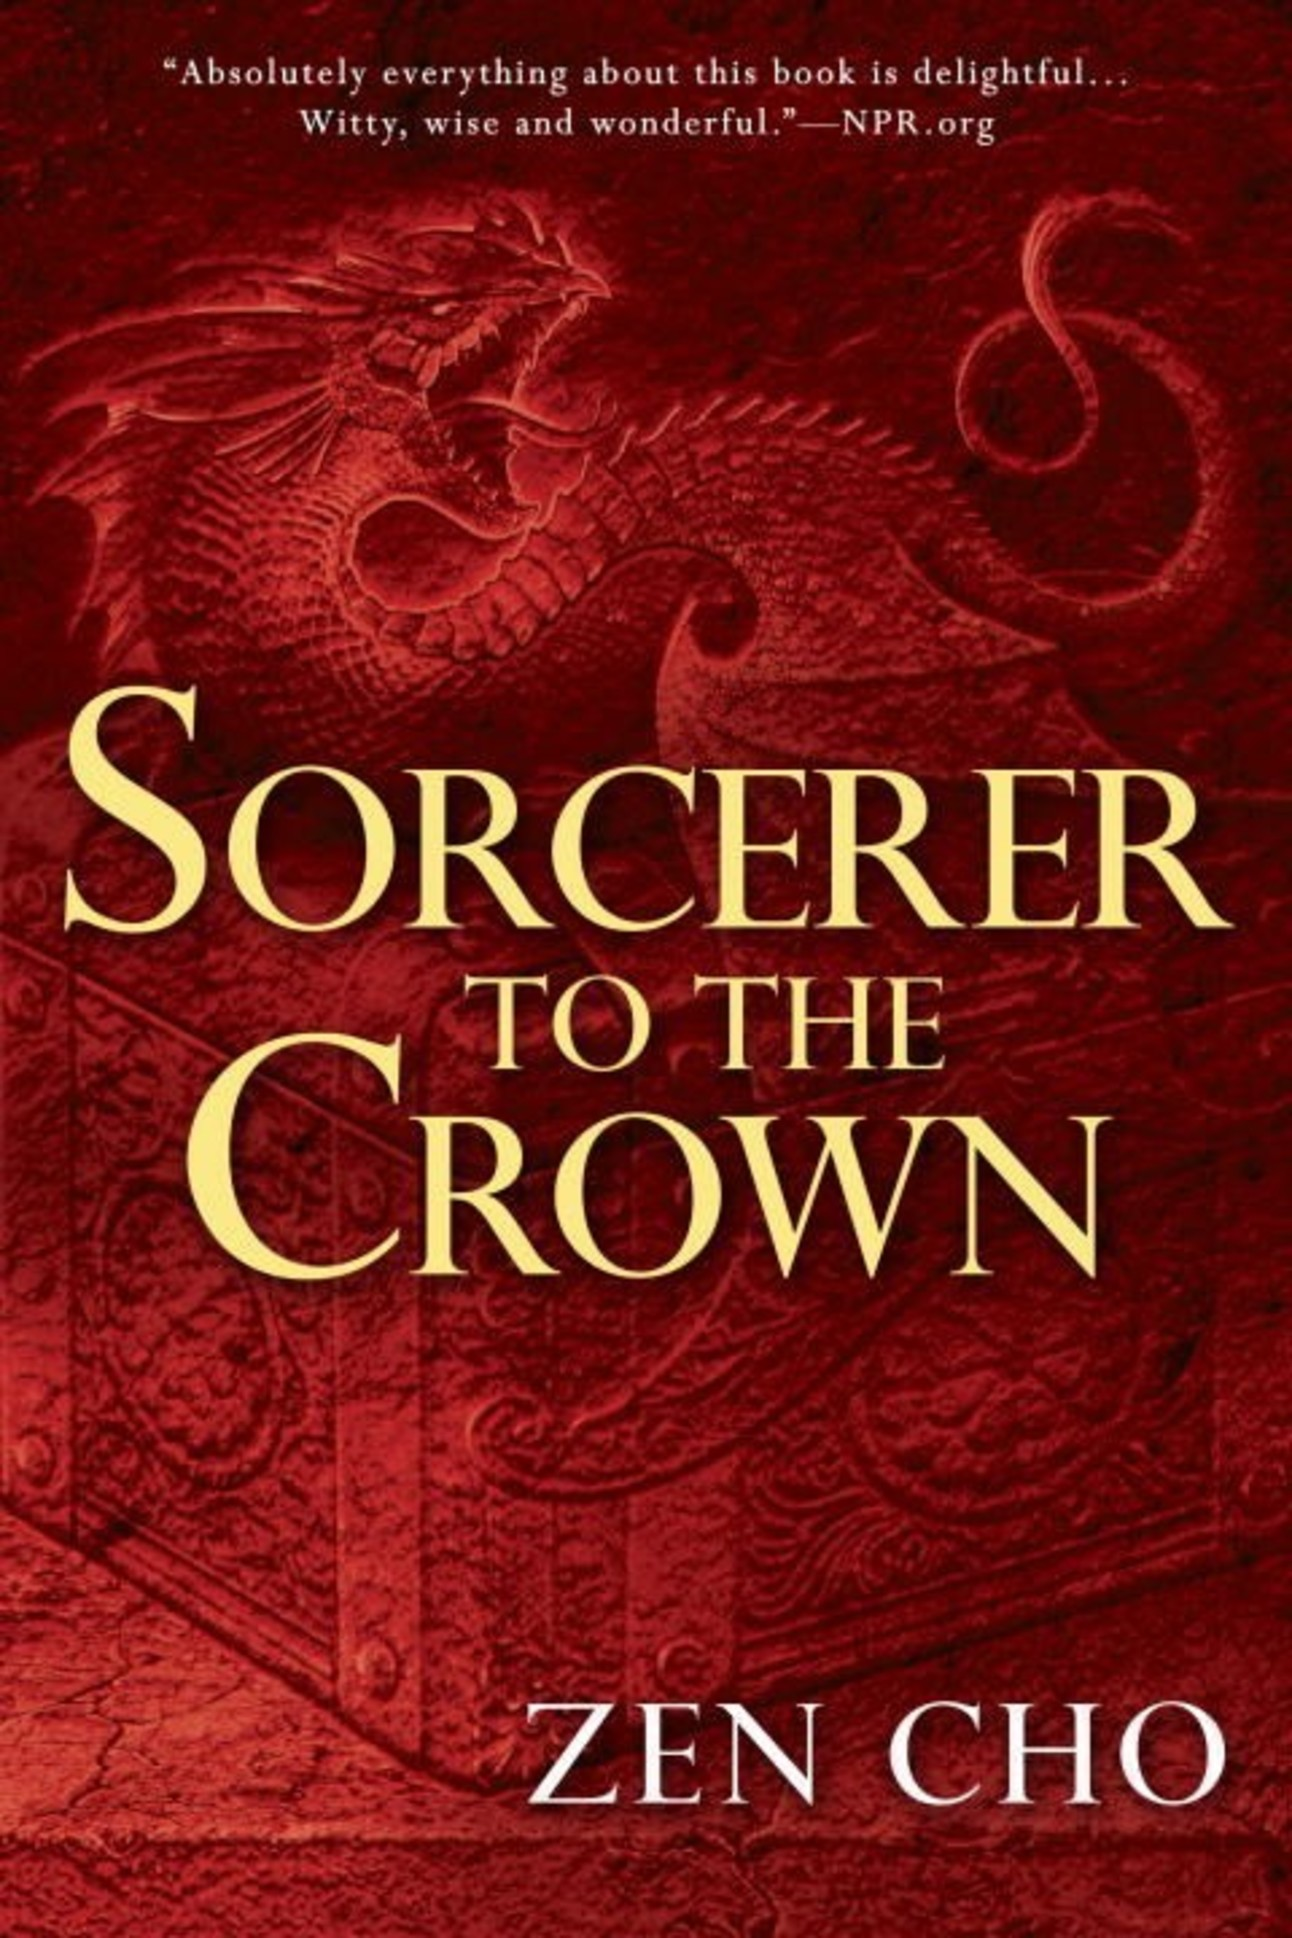 sorcerer to the crown zen cho